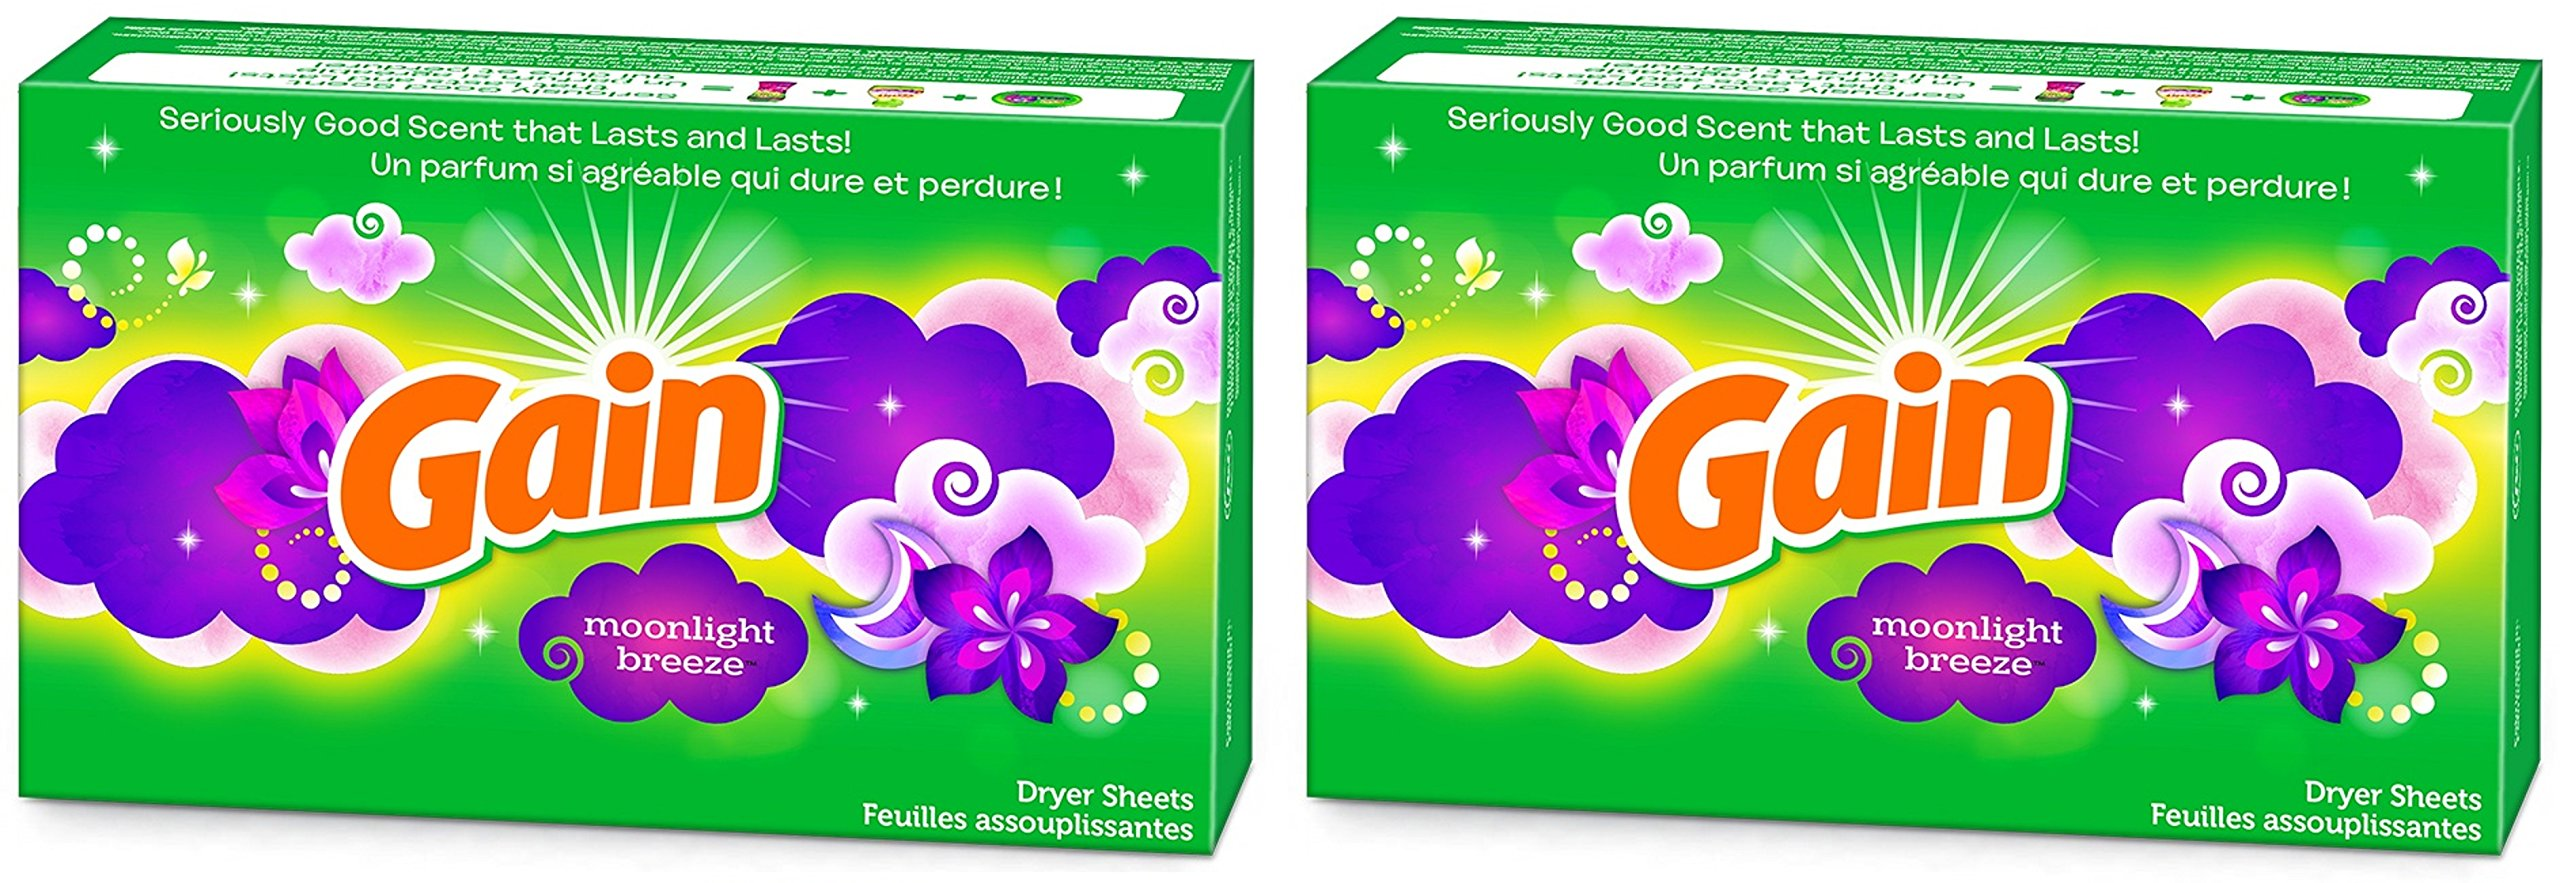 Gain Dryer Sheets - Moonlight Breeze - 60 Count Dryer Sheets Per Box - Pack of 2 Boxes